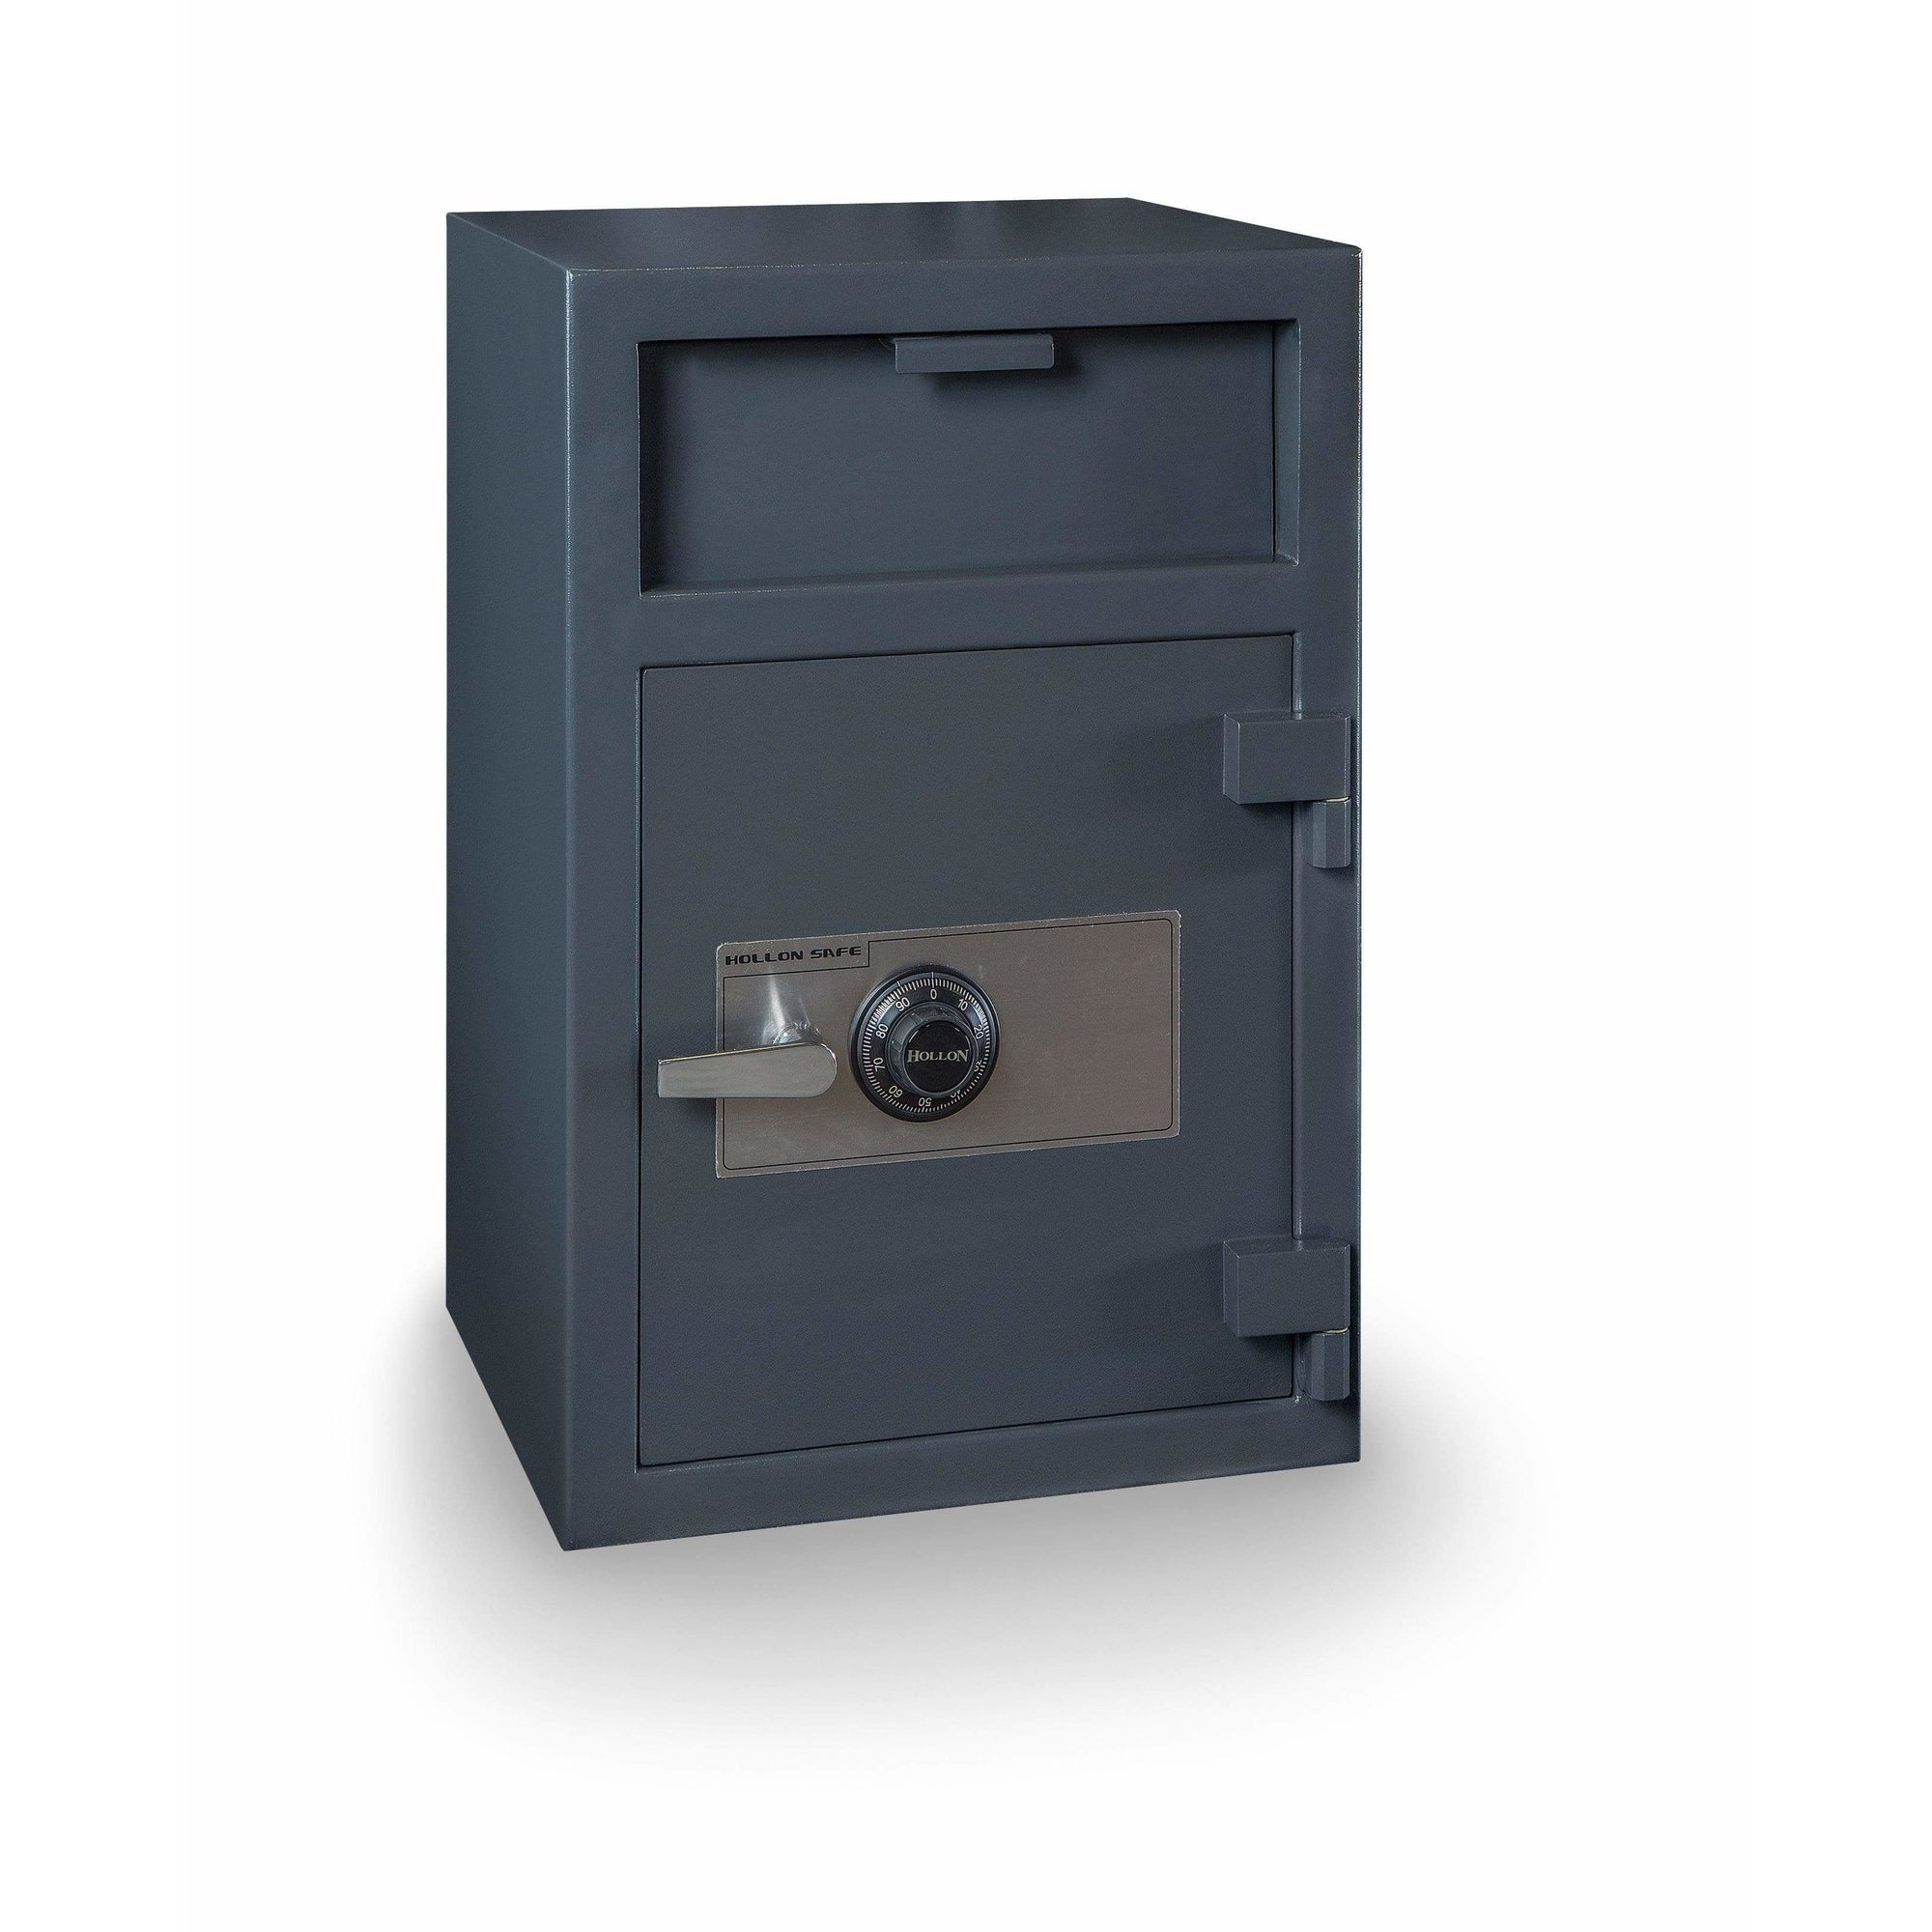 Hollon Safe Deposit Safe Hollon Safe Depository Safe with Inner Locking Compartment FD-3020CILK FD-3020CILK